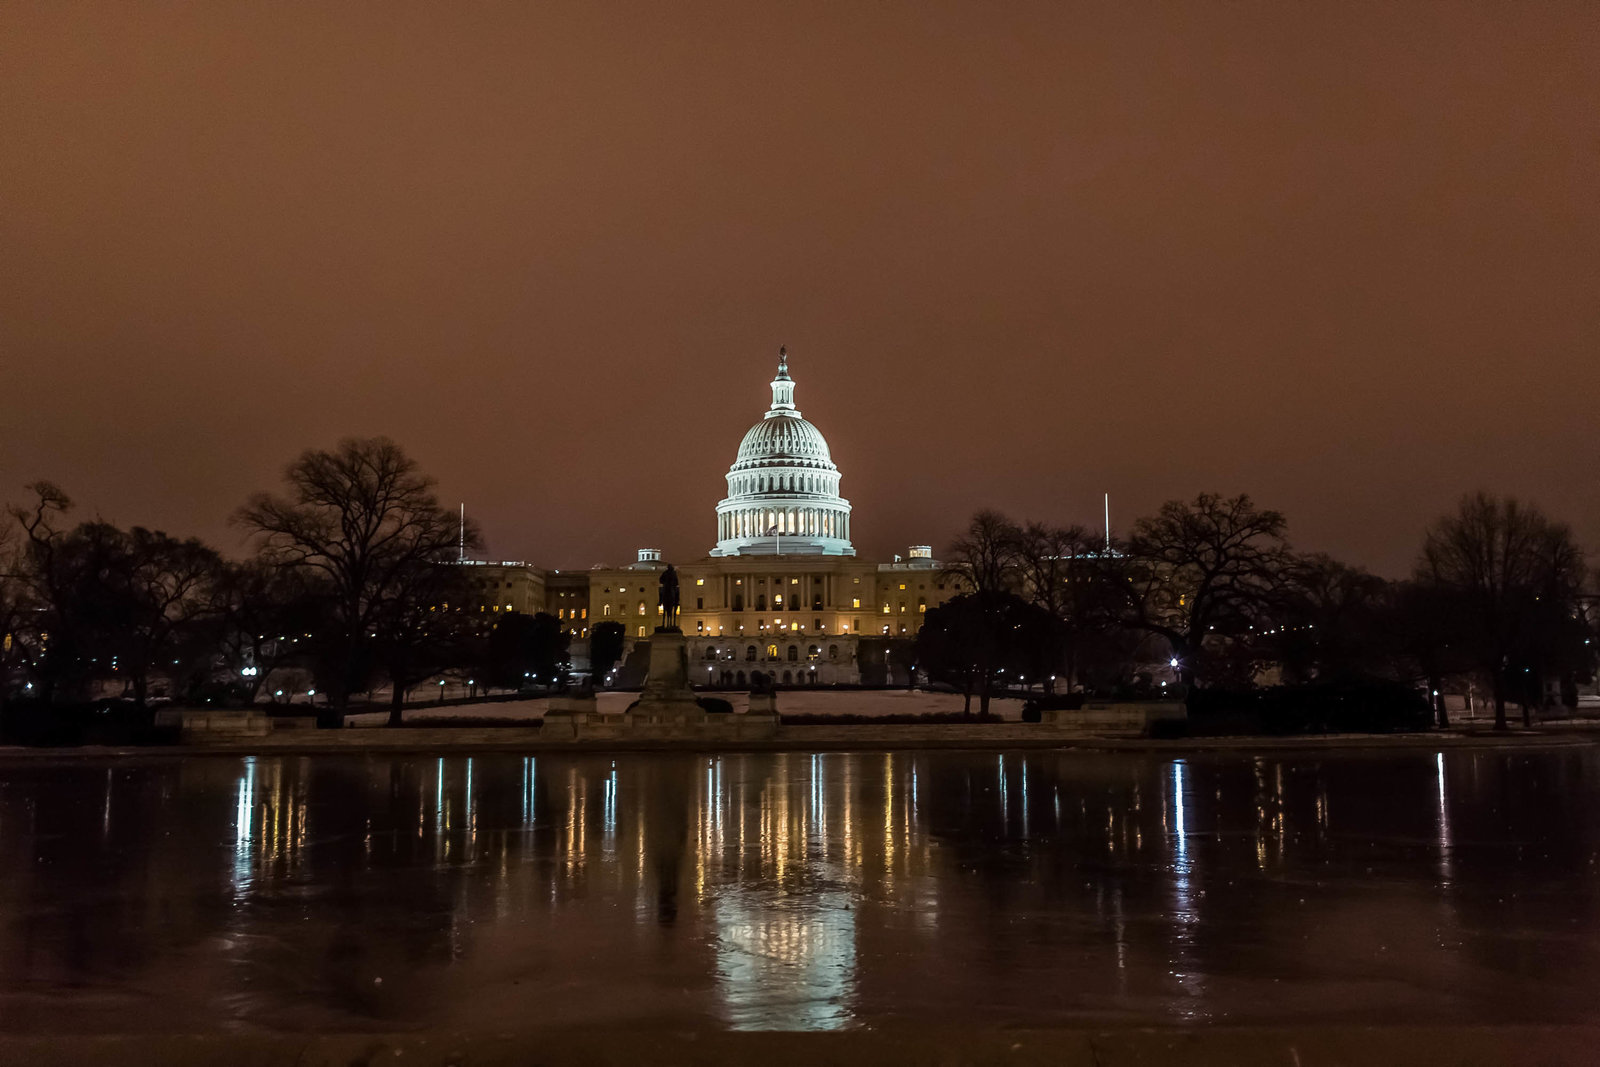 capitol-night-washington-dc-kate-timbers-photography-1199